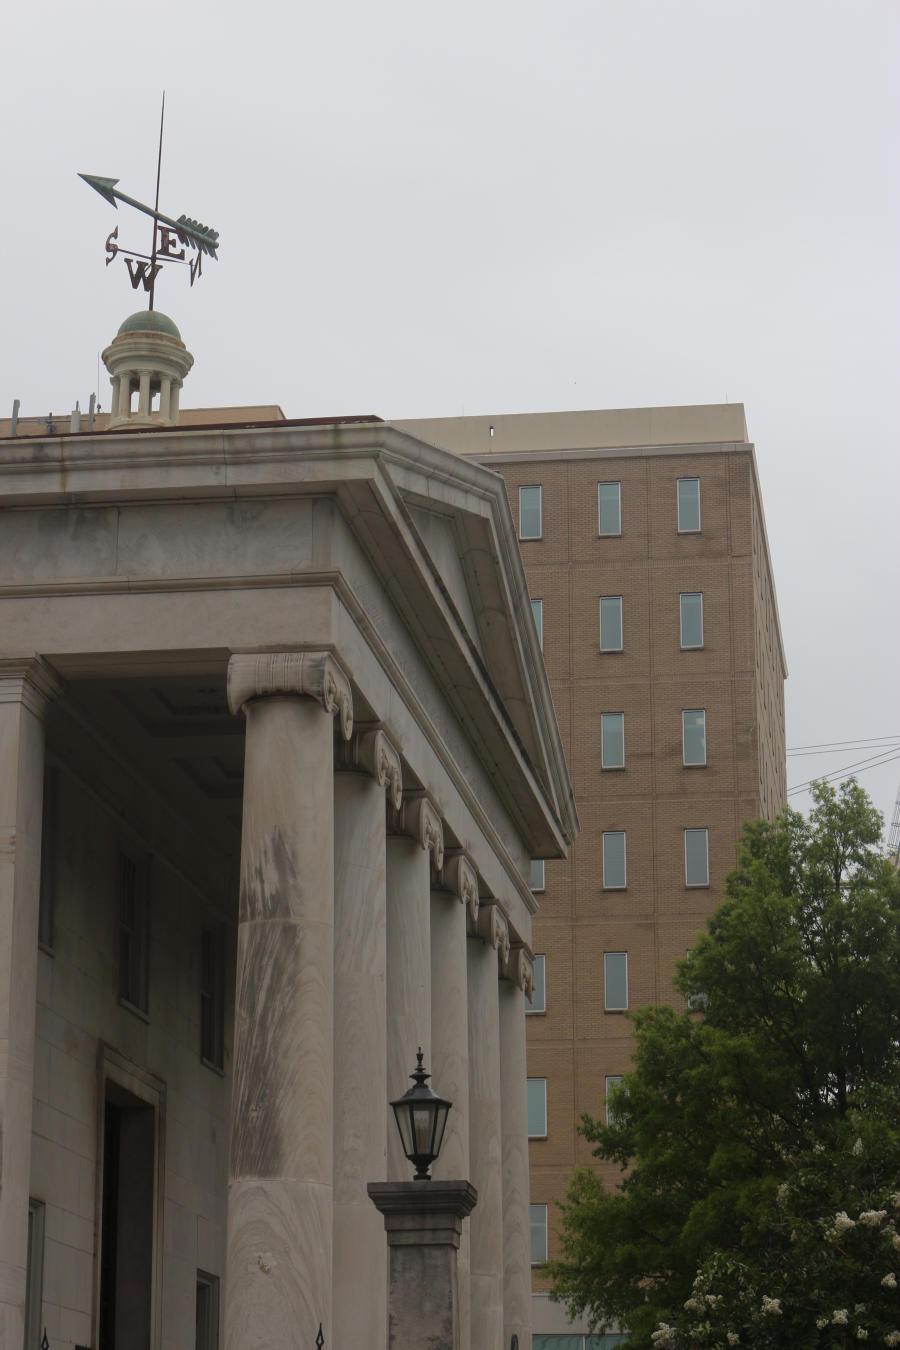 Once part of the previous Courthouse, the weather vane and cupula are now part of the First National Bank in Huntsville.